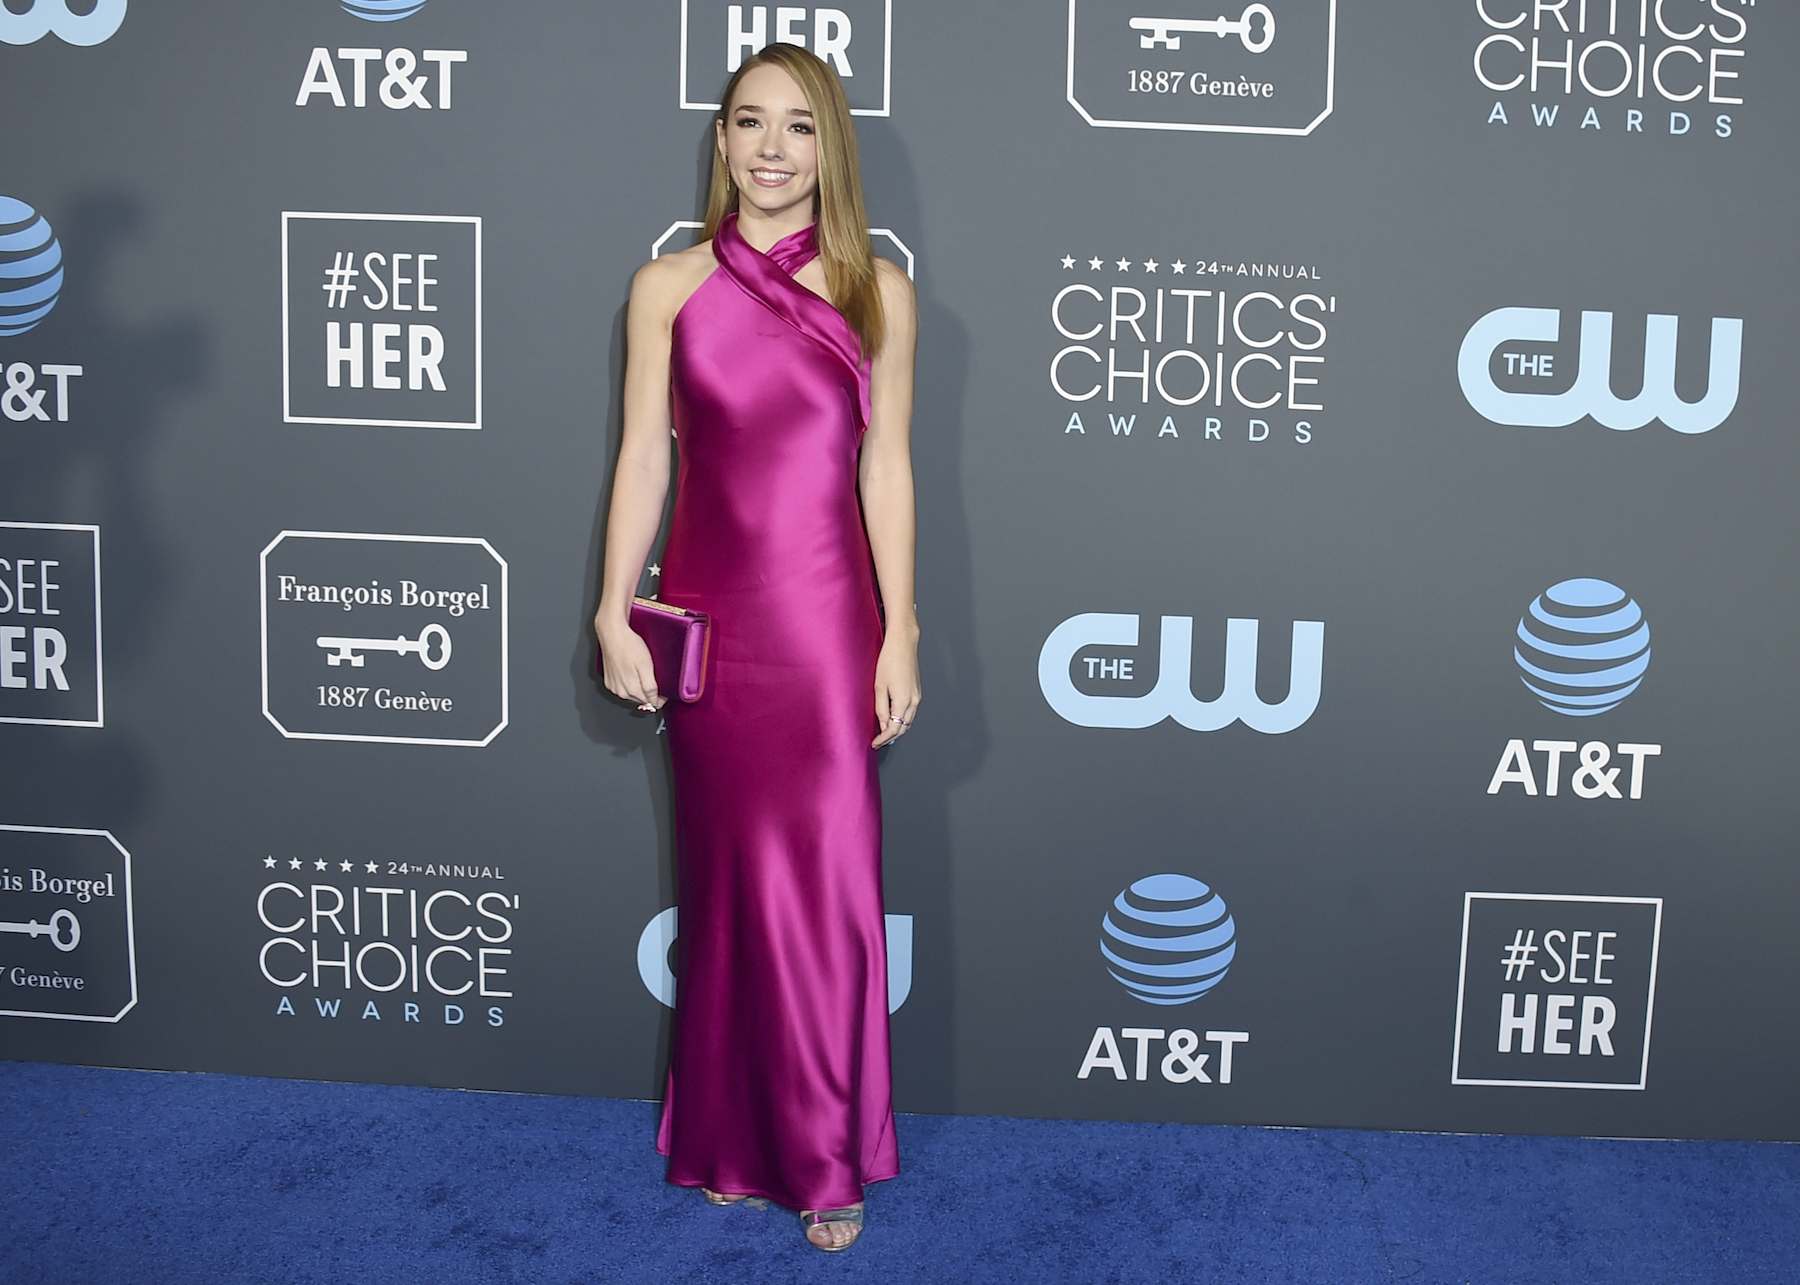 "<div class=""meta image-caption""><div class=""origin-logo origin-image ap""><span>AP</span></div><span class=""caption-text"">Holly Taylor arrives at the 24th annual Critics' Choice Awards on Sunday, Jan. 13, 2019, at the Barker Hangar in Santa Monica, Calif. (Jordan Strauss/Invision/AP)</span></div>"